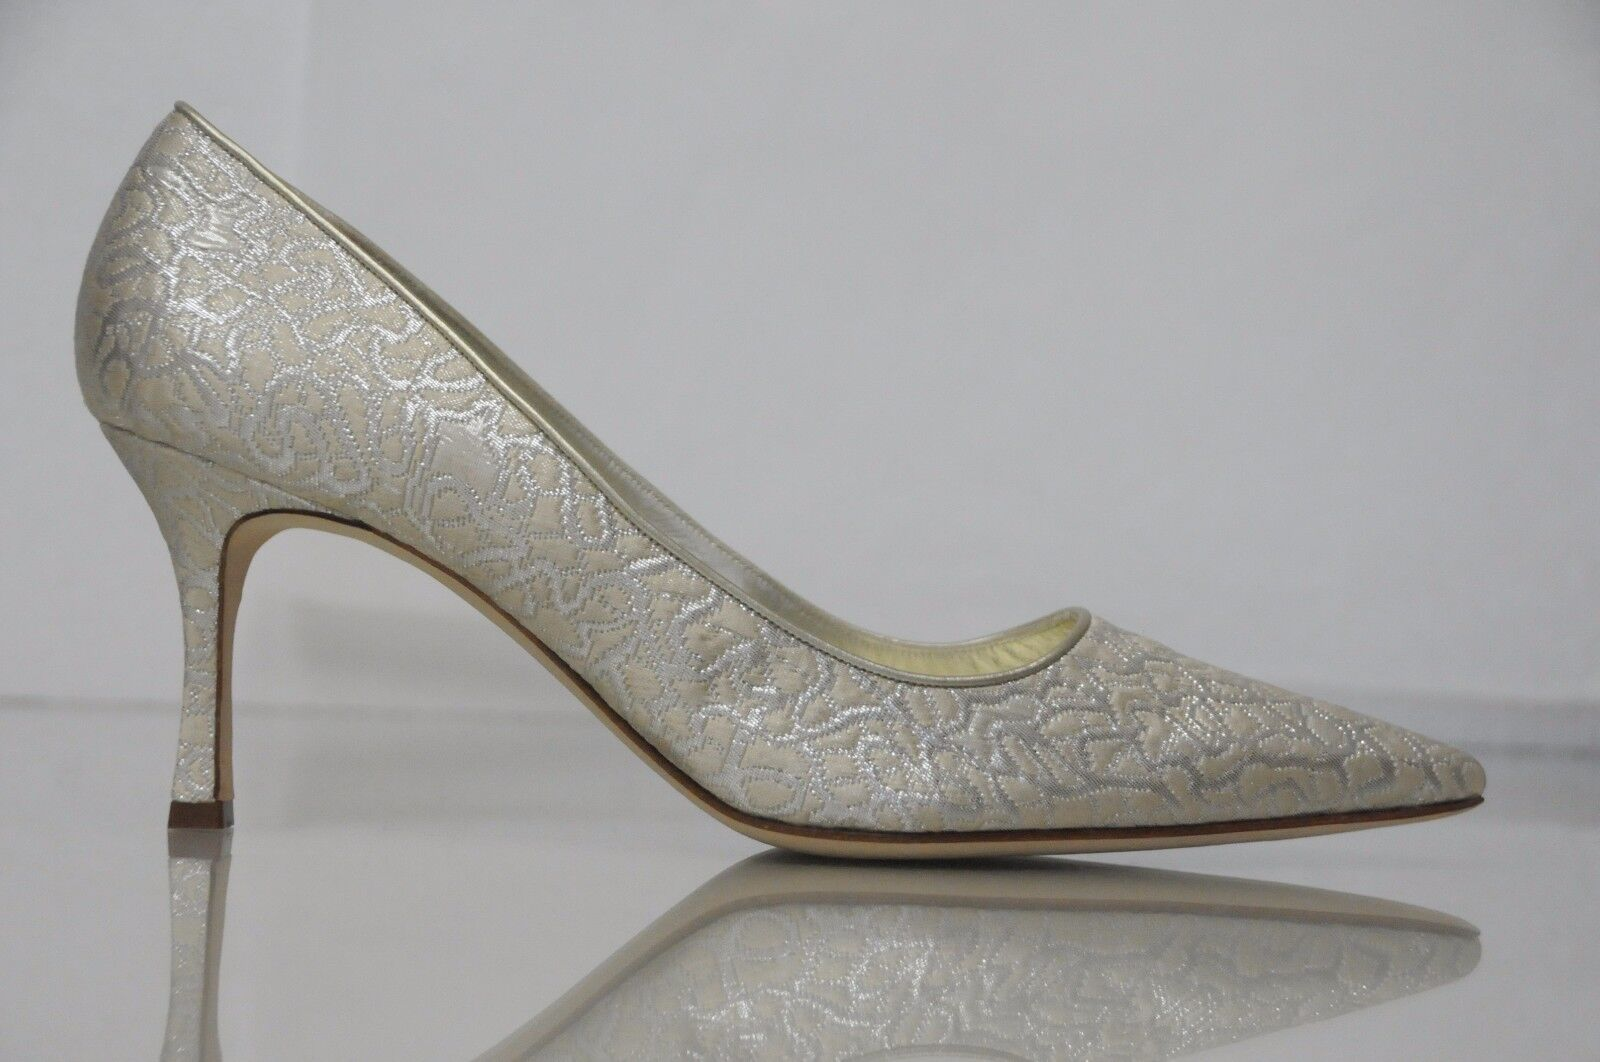 835 New Manolo Blahnik argent on Ivory Brocade chaussures Pumps BB 42 Wedding